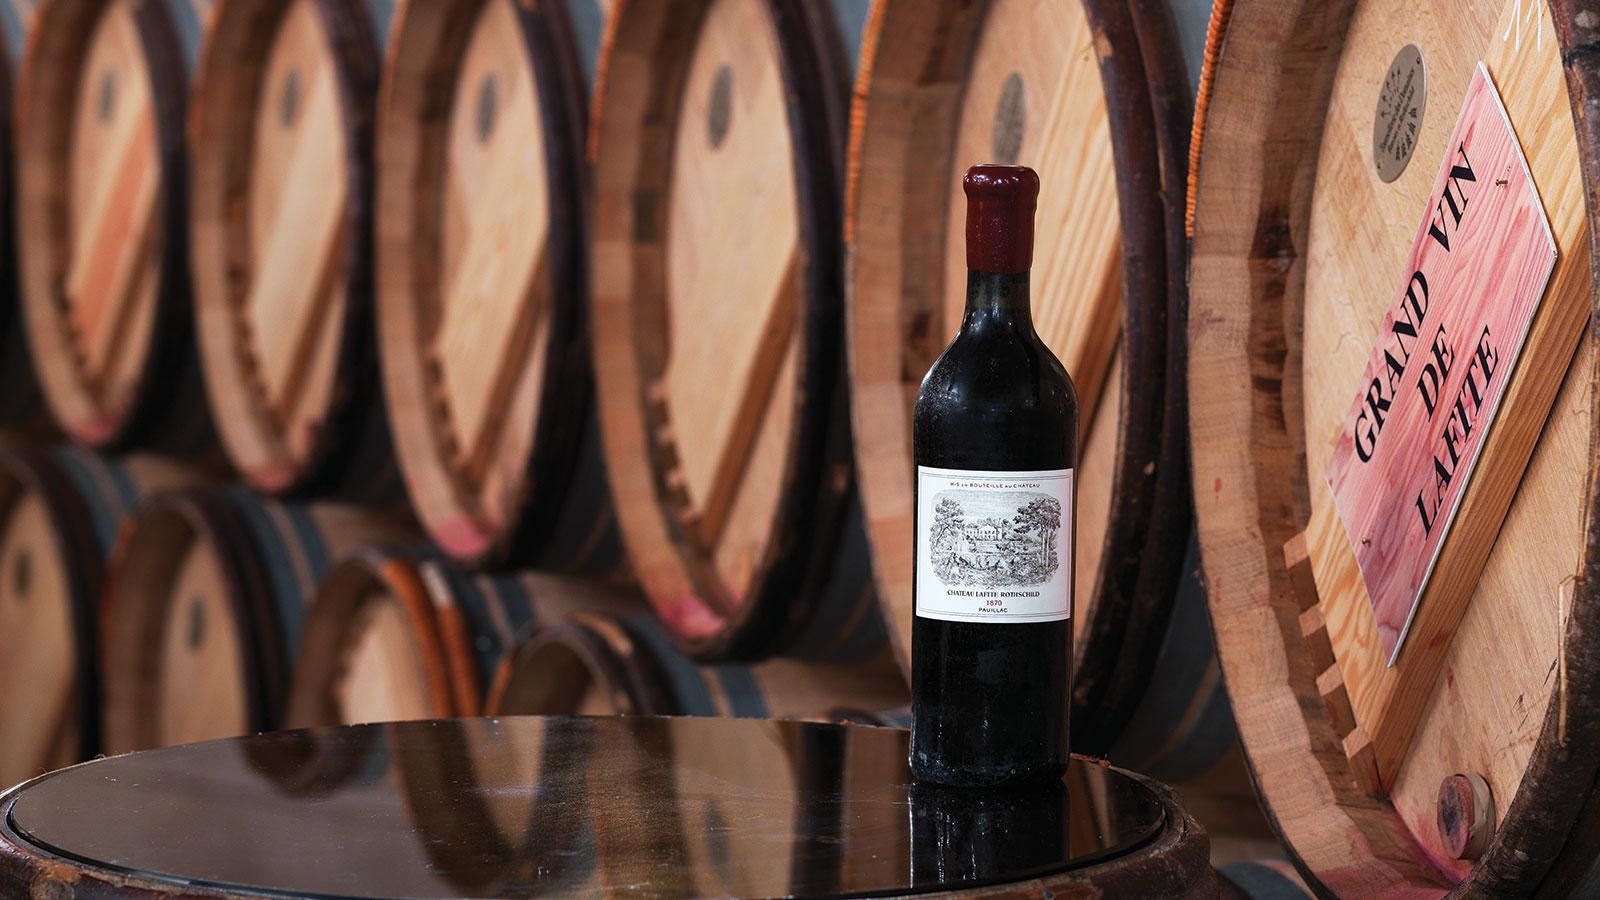 Record-Breaking Lafite Rothschild Auction Brings in $7.86 Million